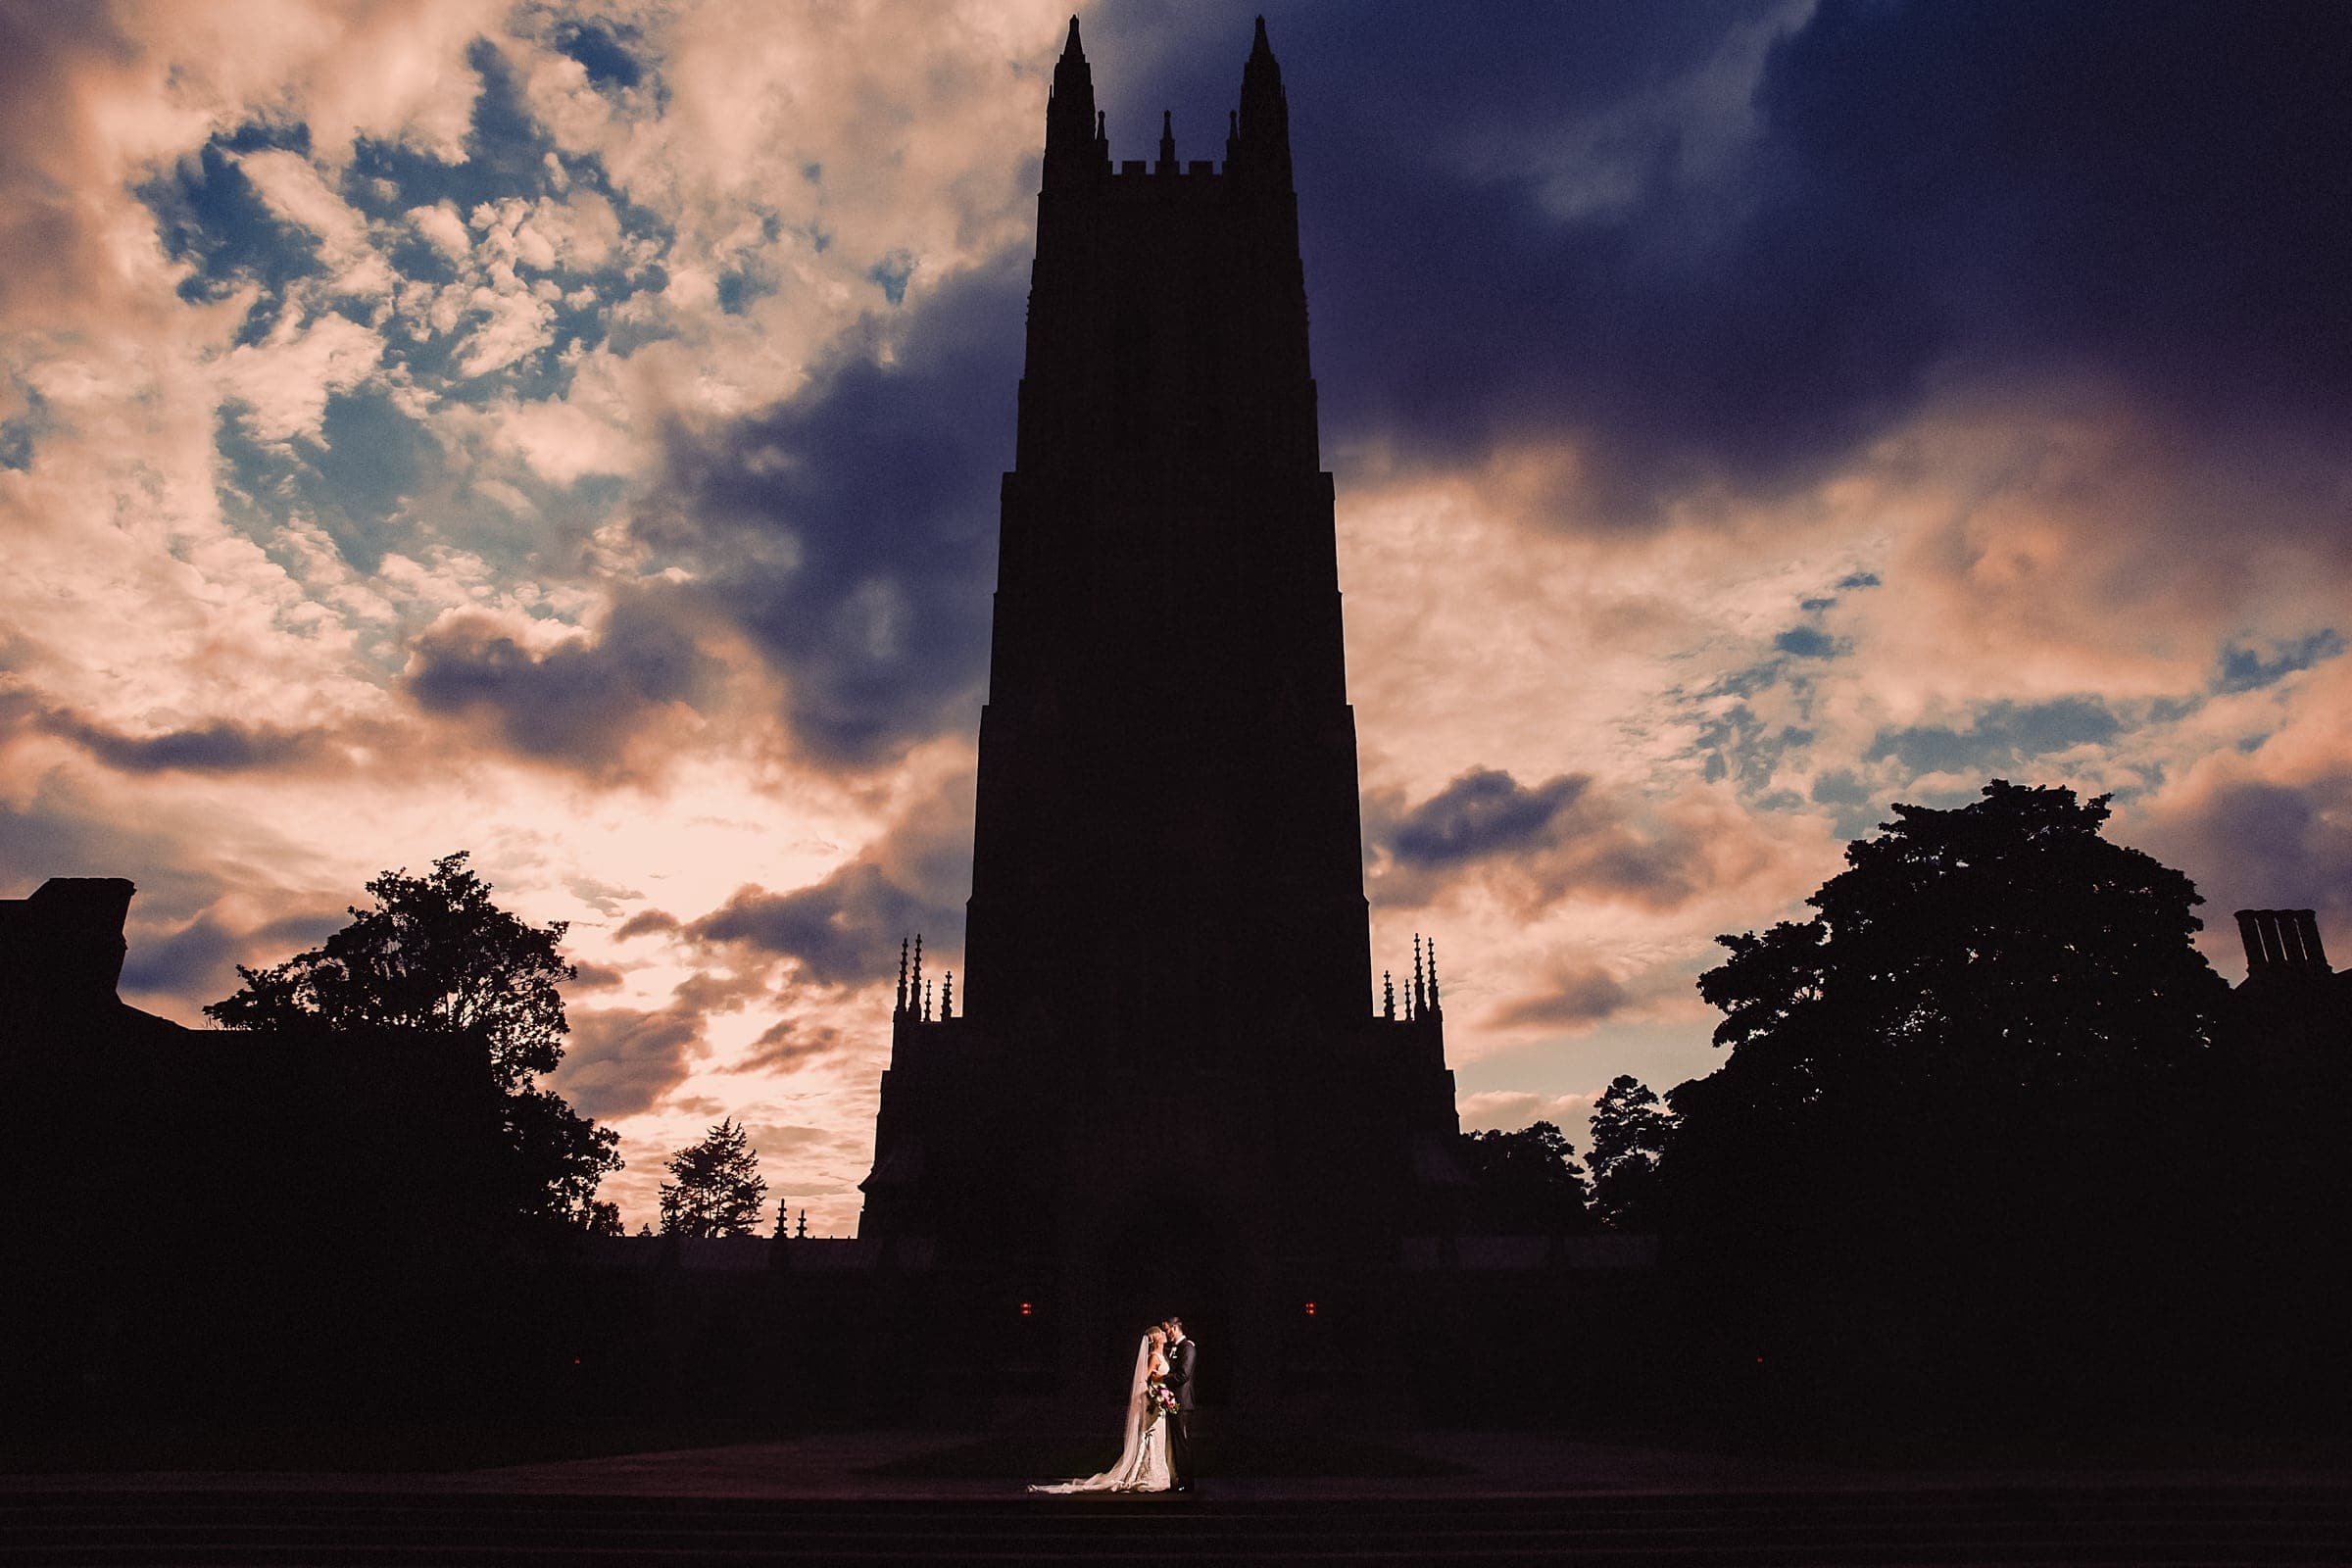 Duke Chapel Weddings - Couple in Silhouette of Chapel with Dramatic Sky